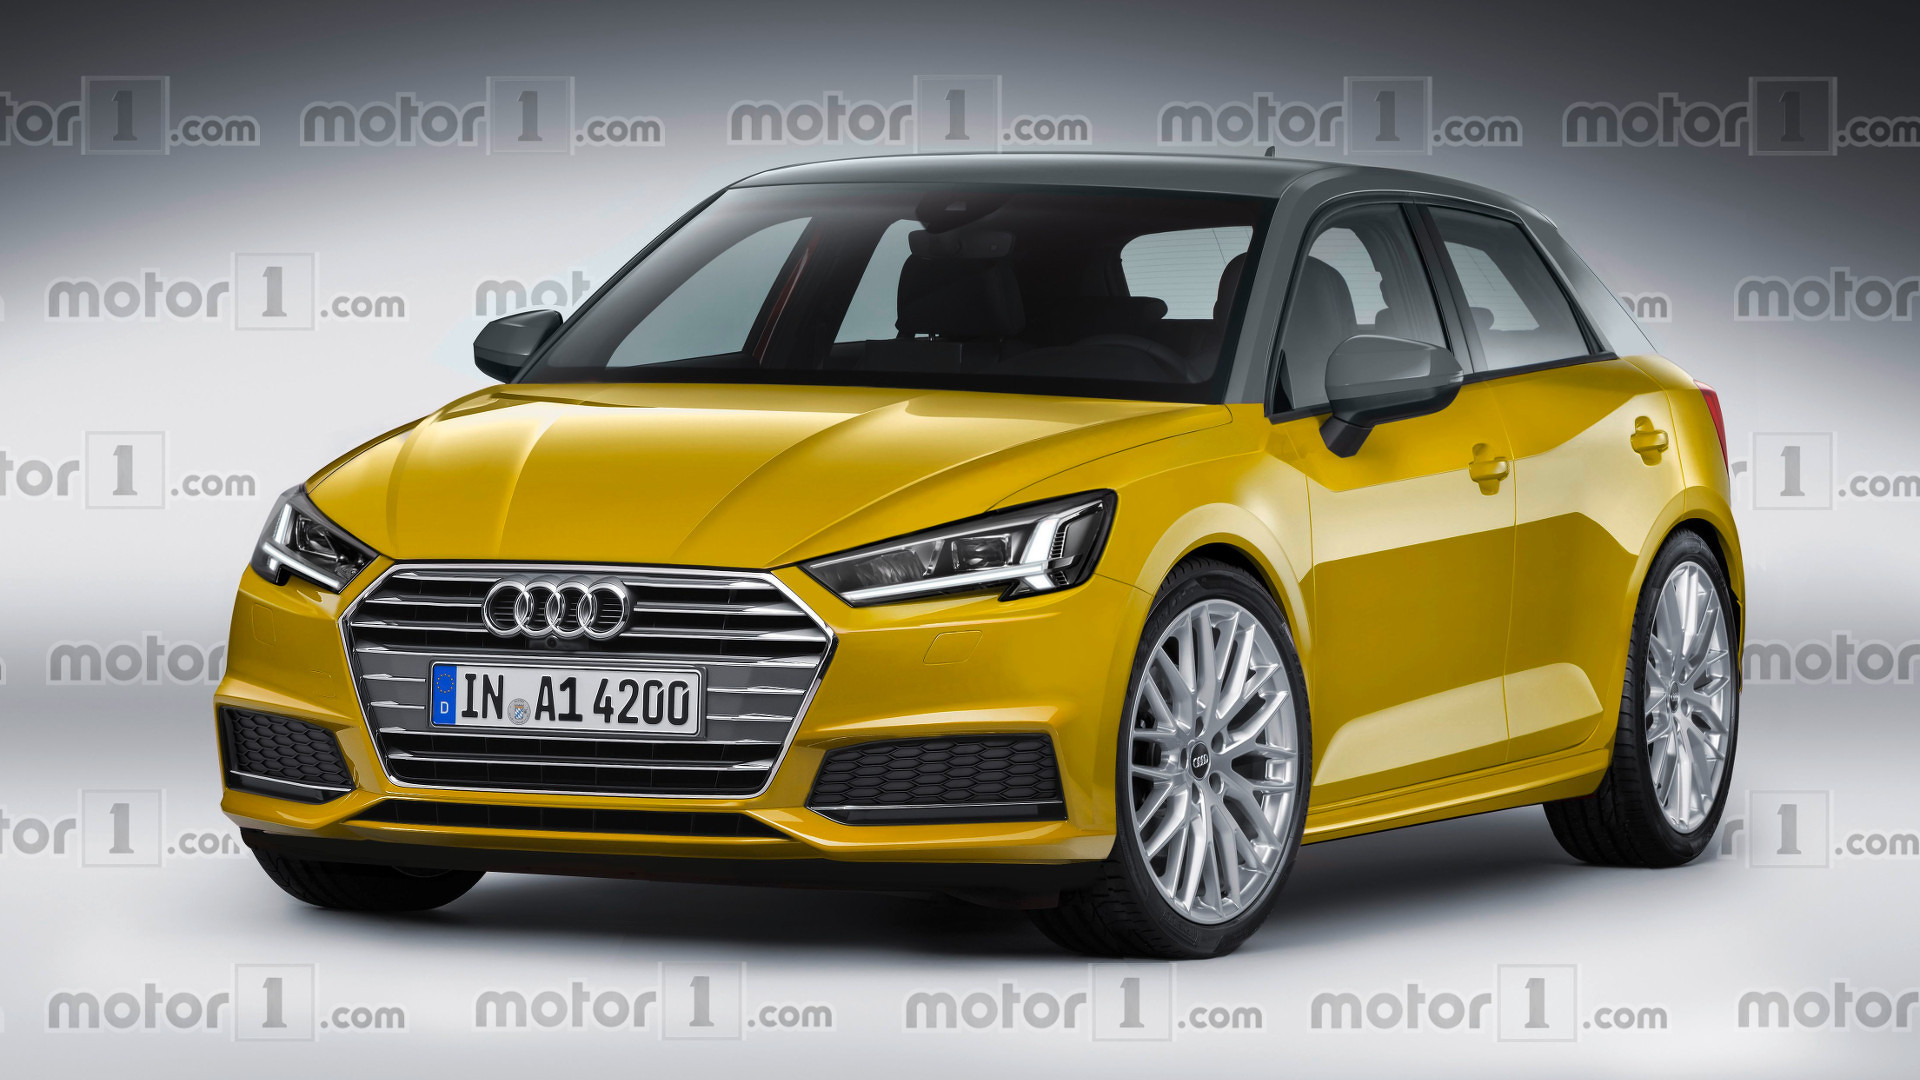 Audi A1 Usa >> 2014 Audi A1 Coming To Usa | Autos Post